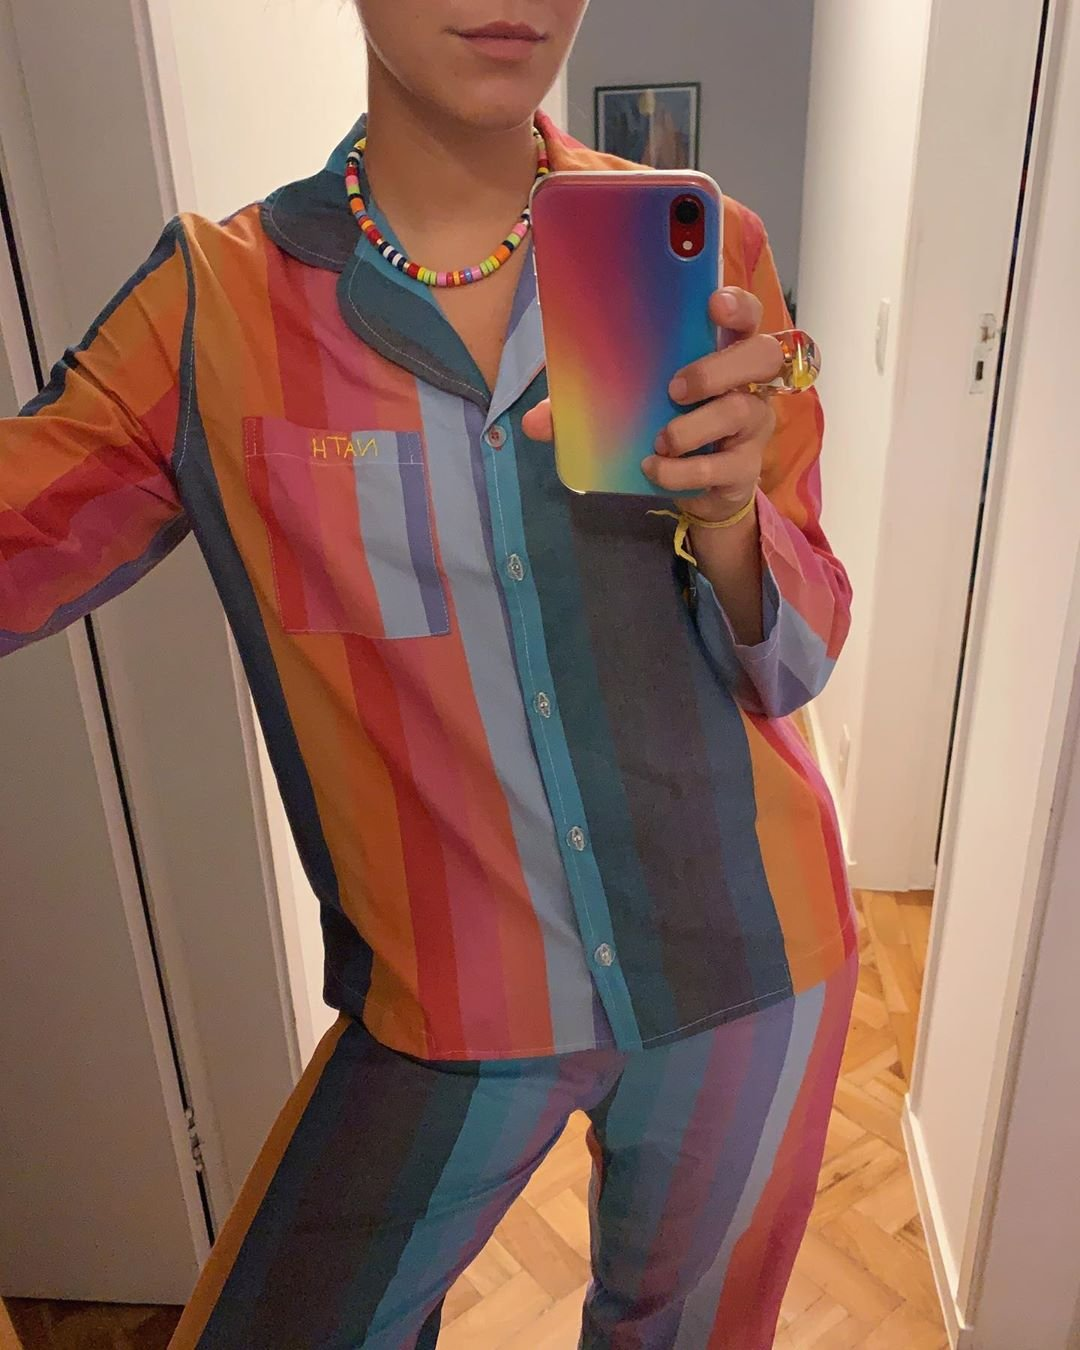 It girls - Arco iris - Combinar acessórios - Outono - Street Style - https://stealthelook.com.br